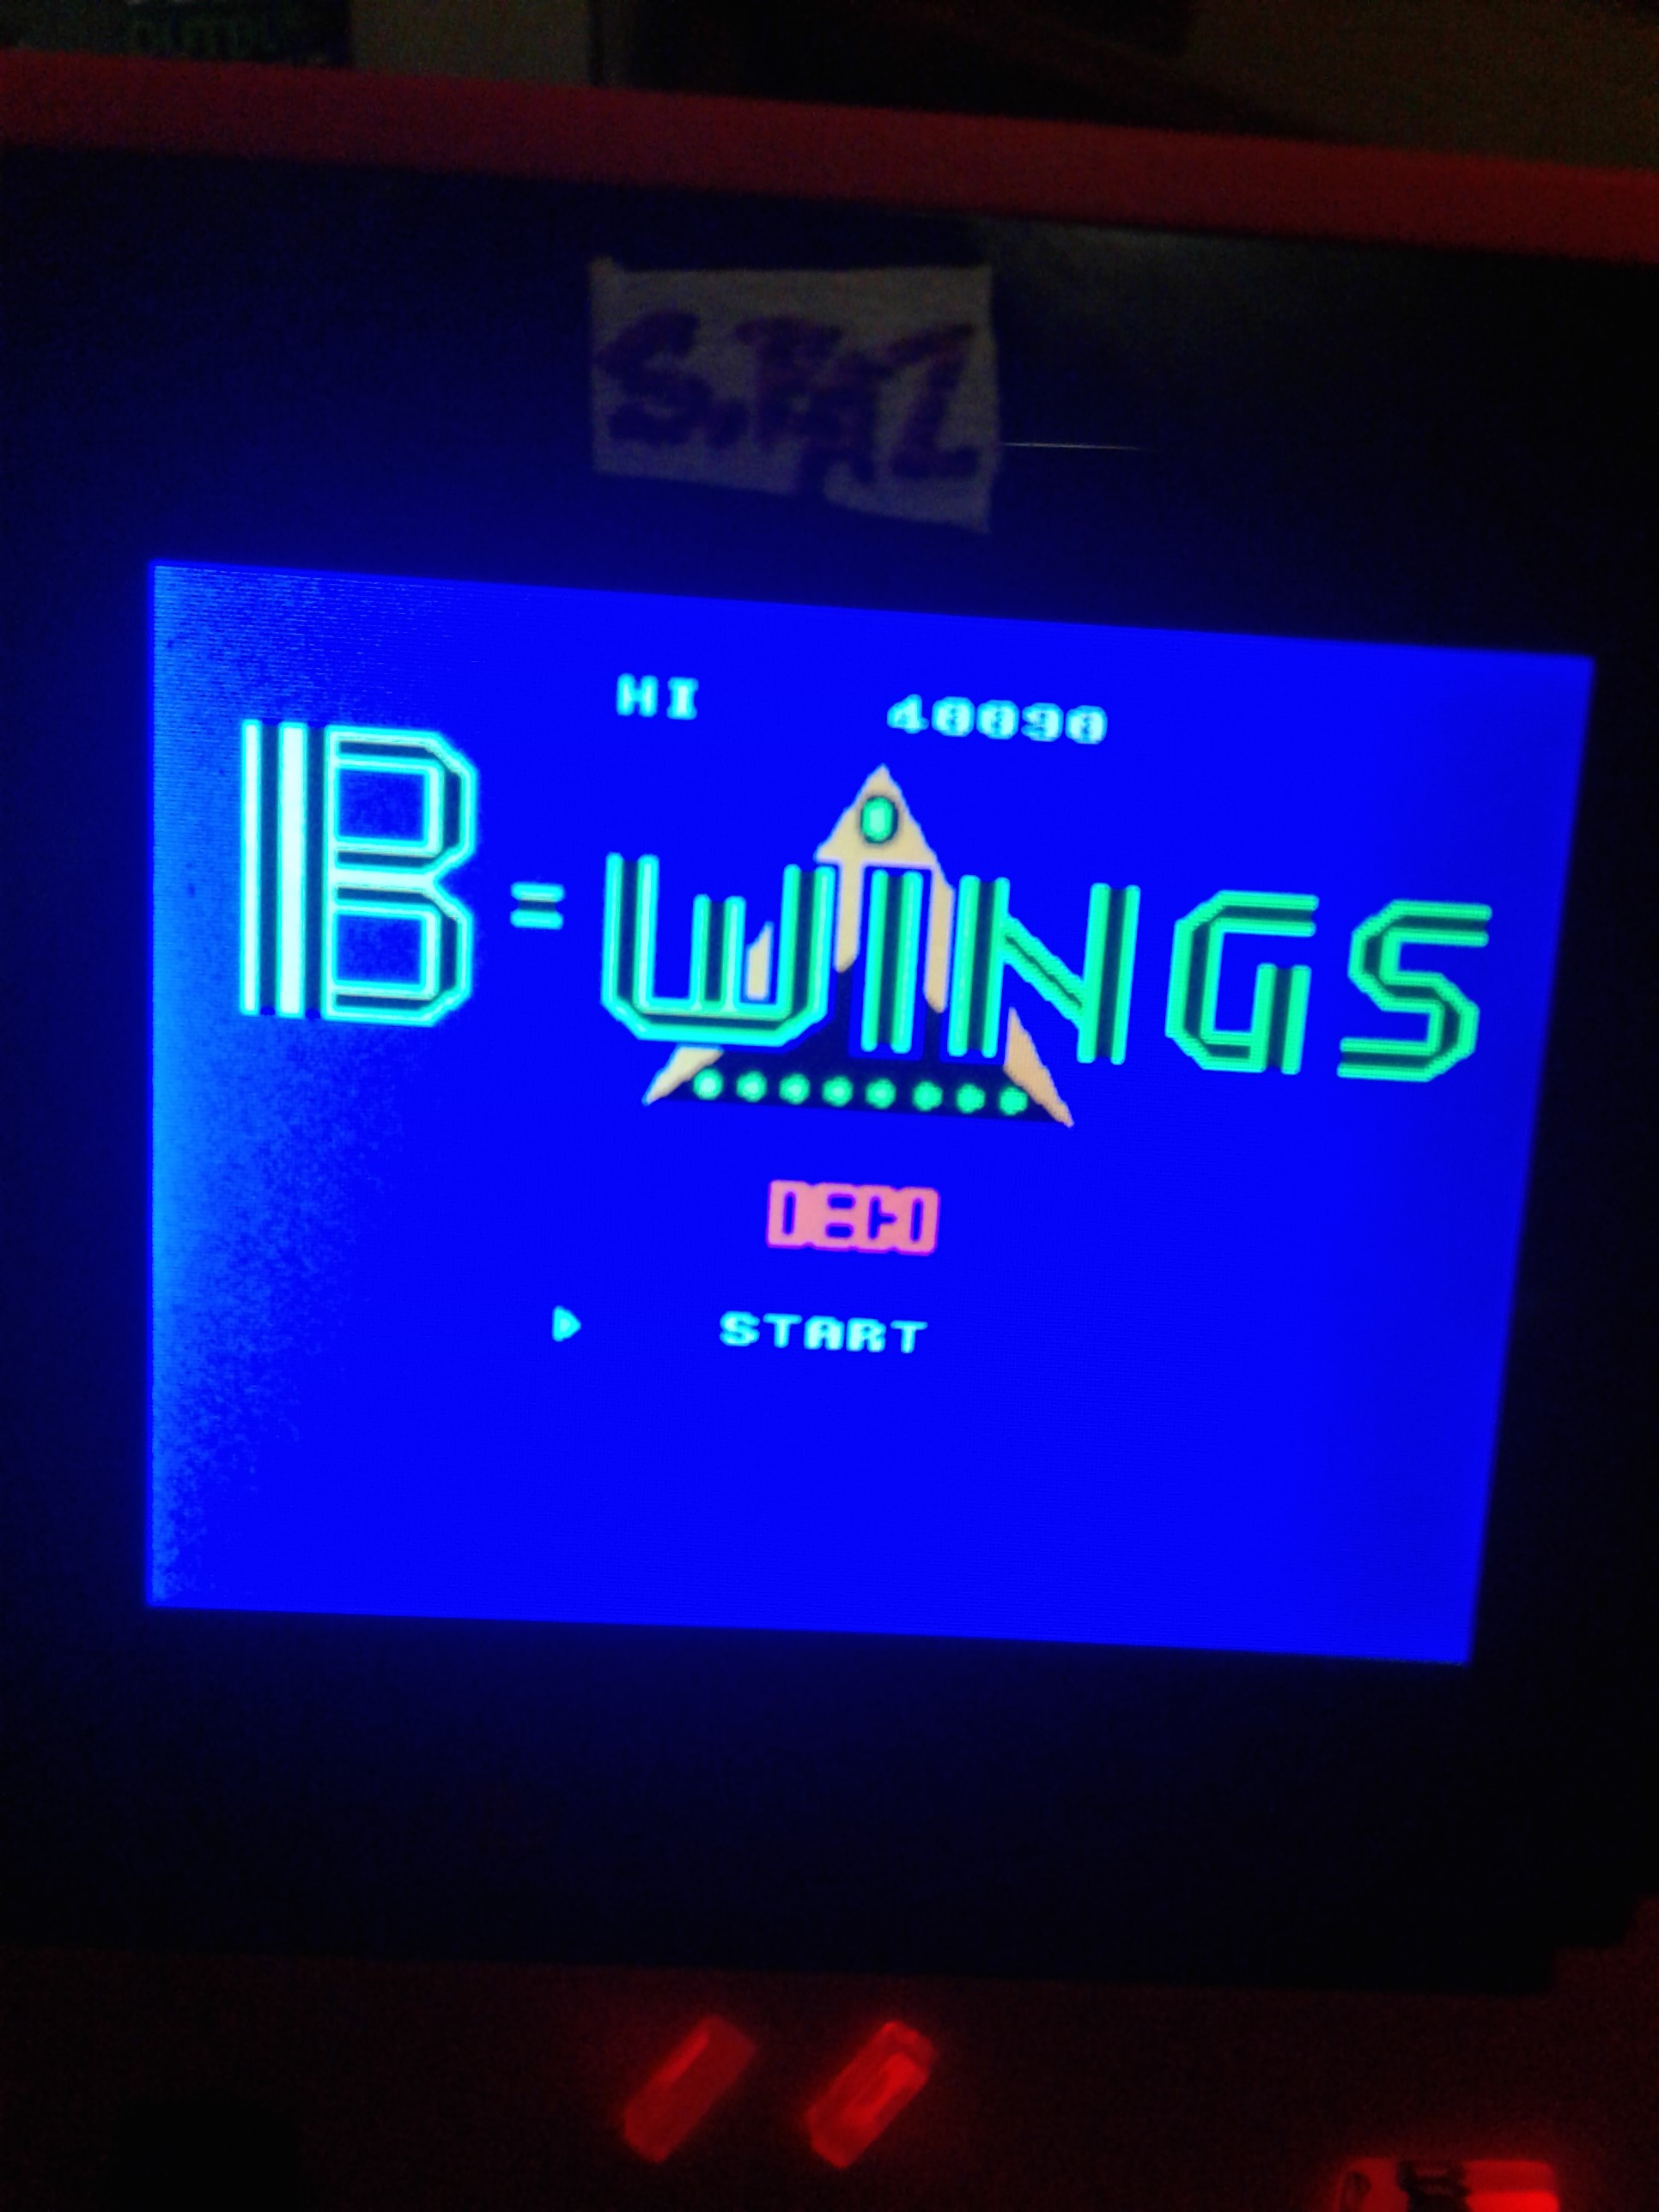 B-Wings 40,090 points